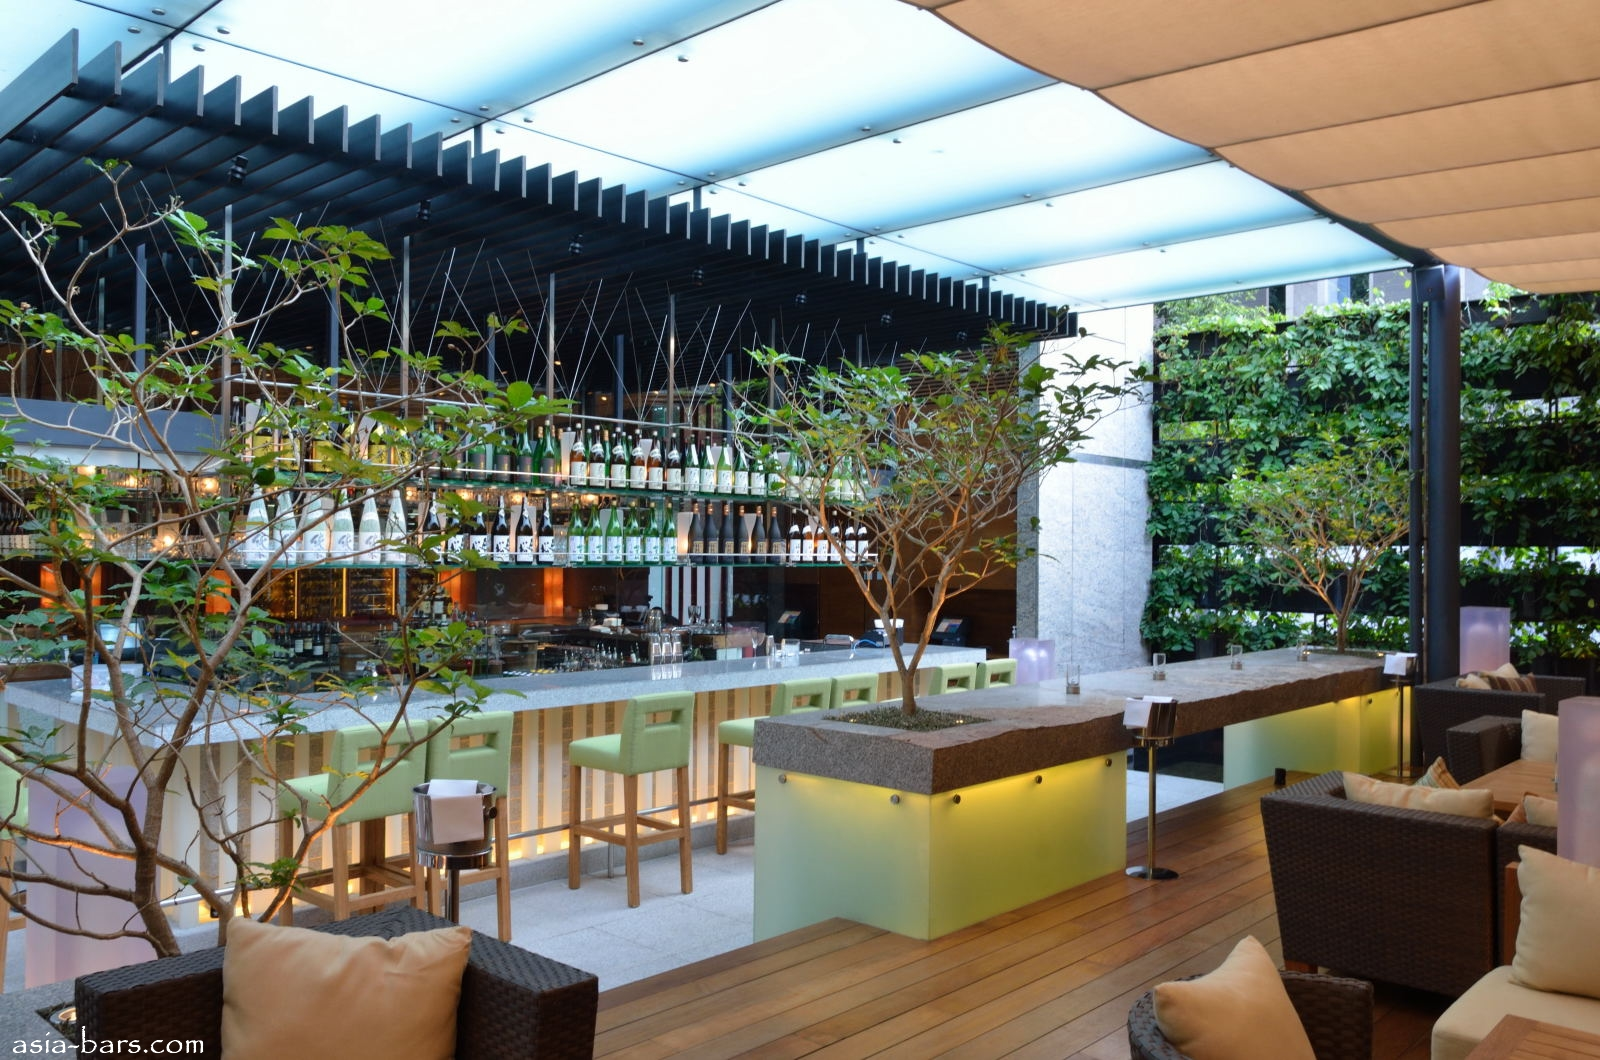 Zuma bangkok globally acclaimed restaurant group opens for Terrace bar grill